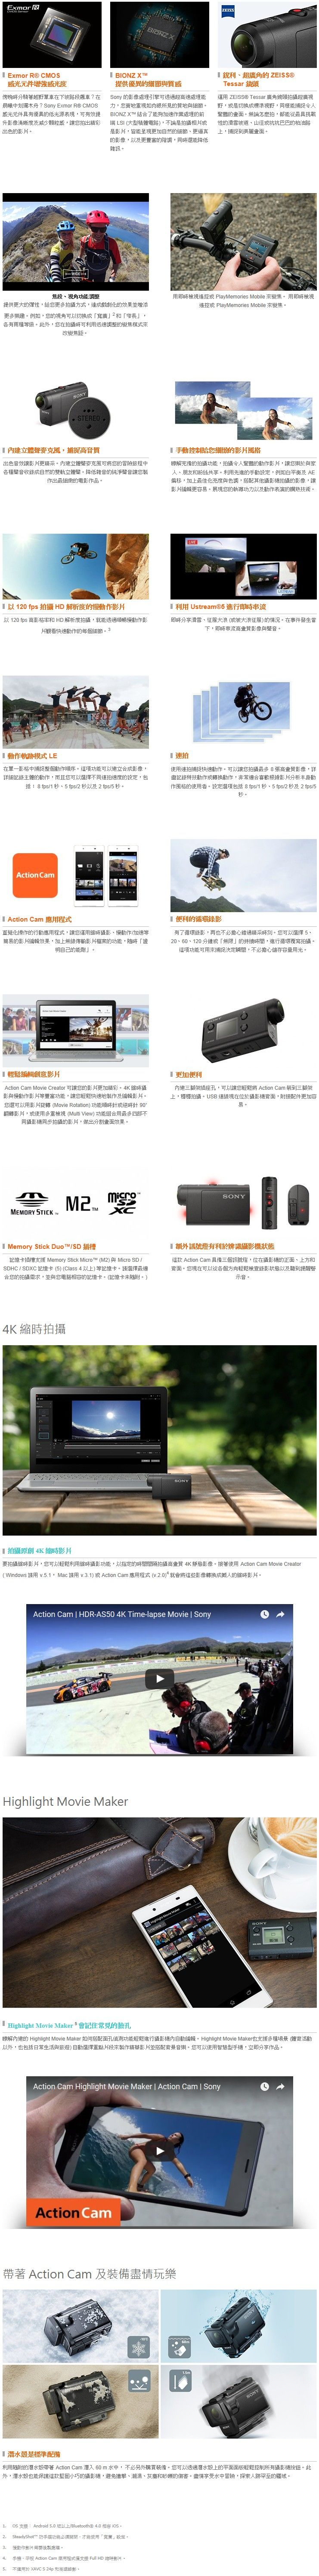 SONY HDR-AS50R 運動攝影機即時監控手錶組  sony HDR-AS50R